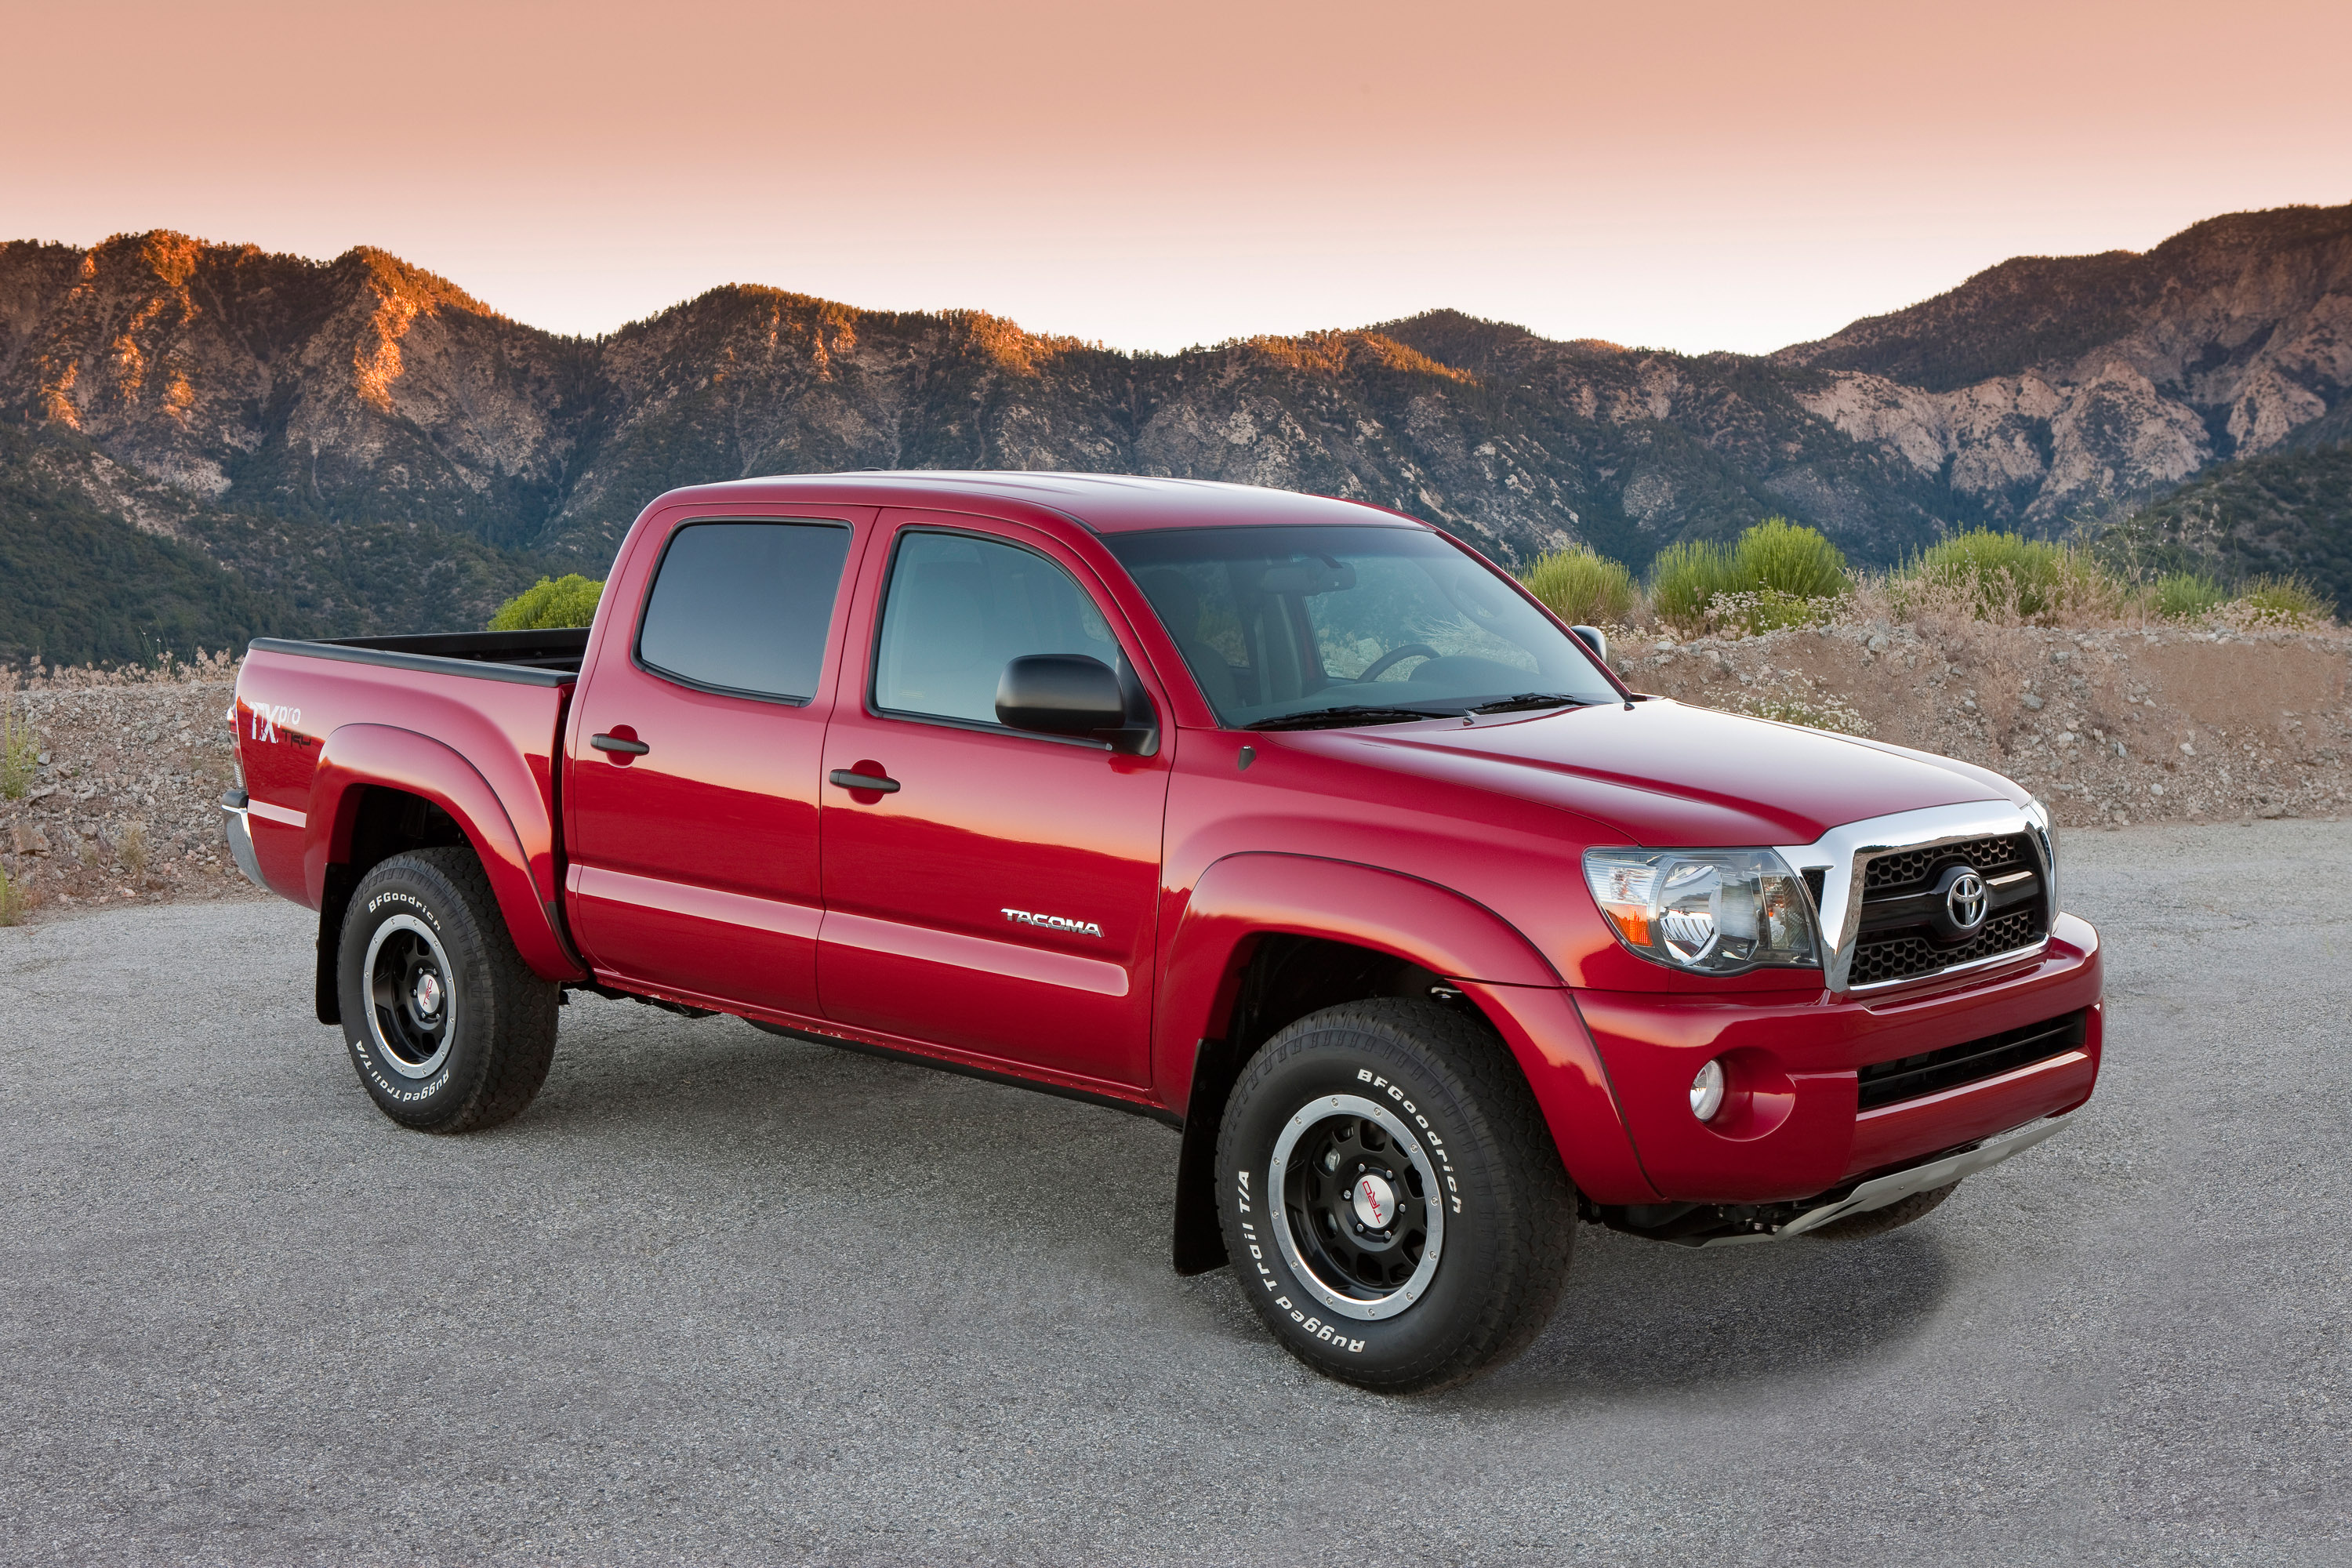 2011 Toyota Tacoma Picture 40787